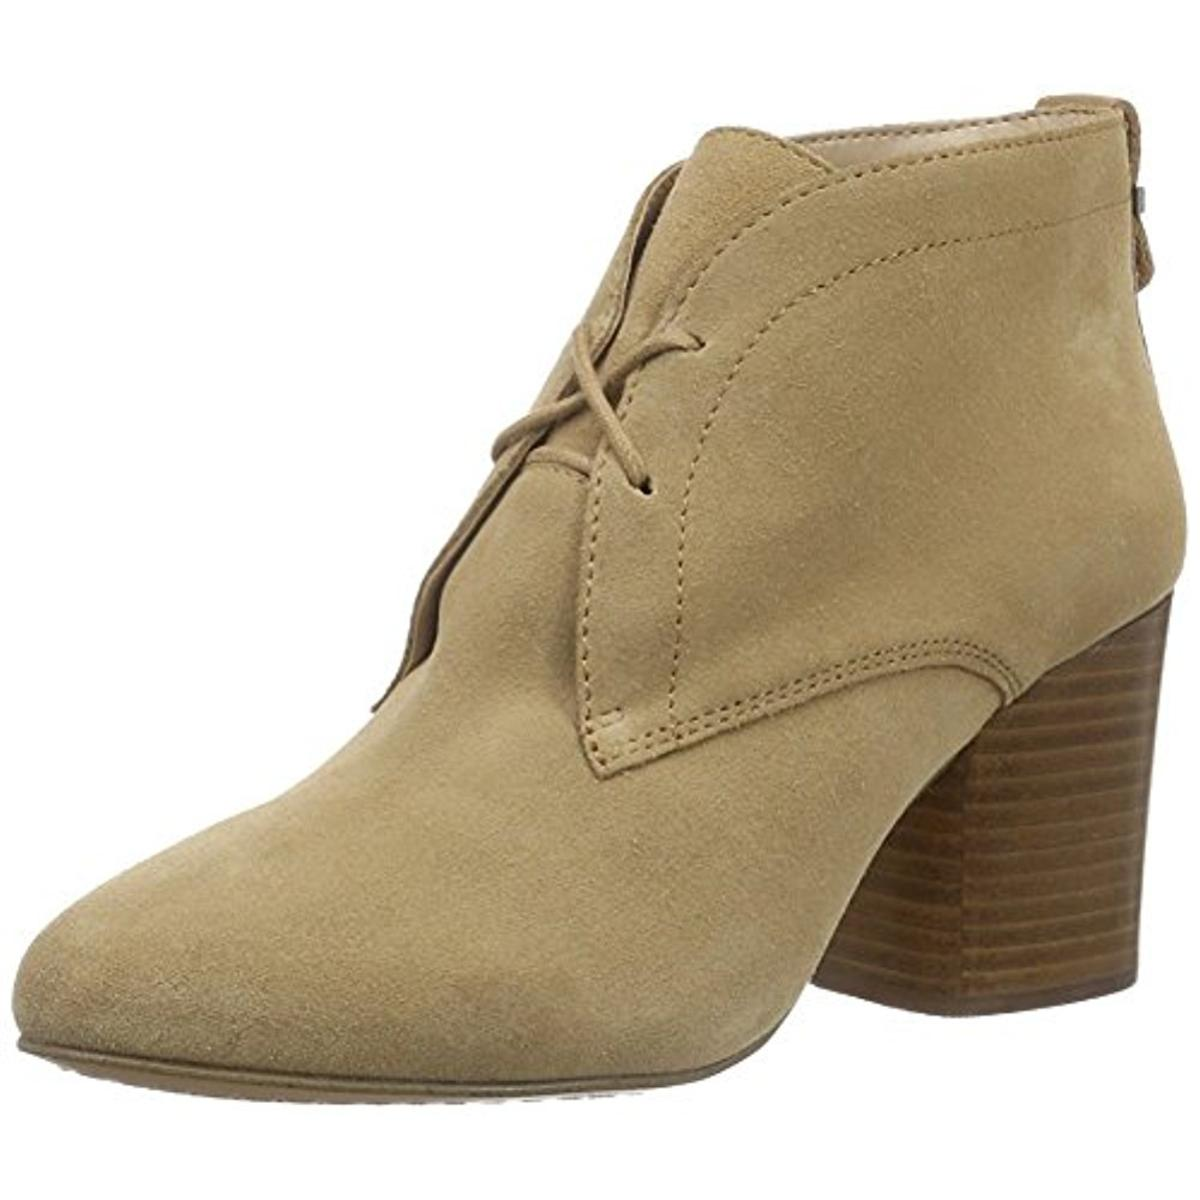 French Connection Damenschuhe Dinah Suede Stacked Heel Ankle Stiefel Schuhes BHFO 1333